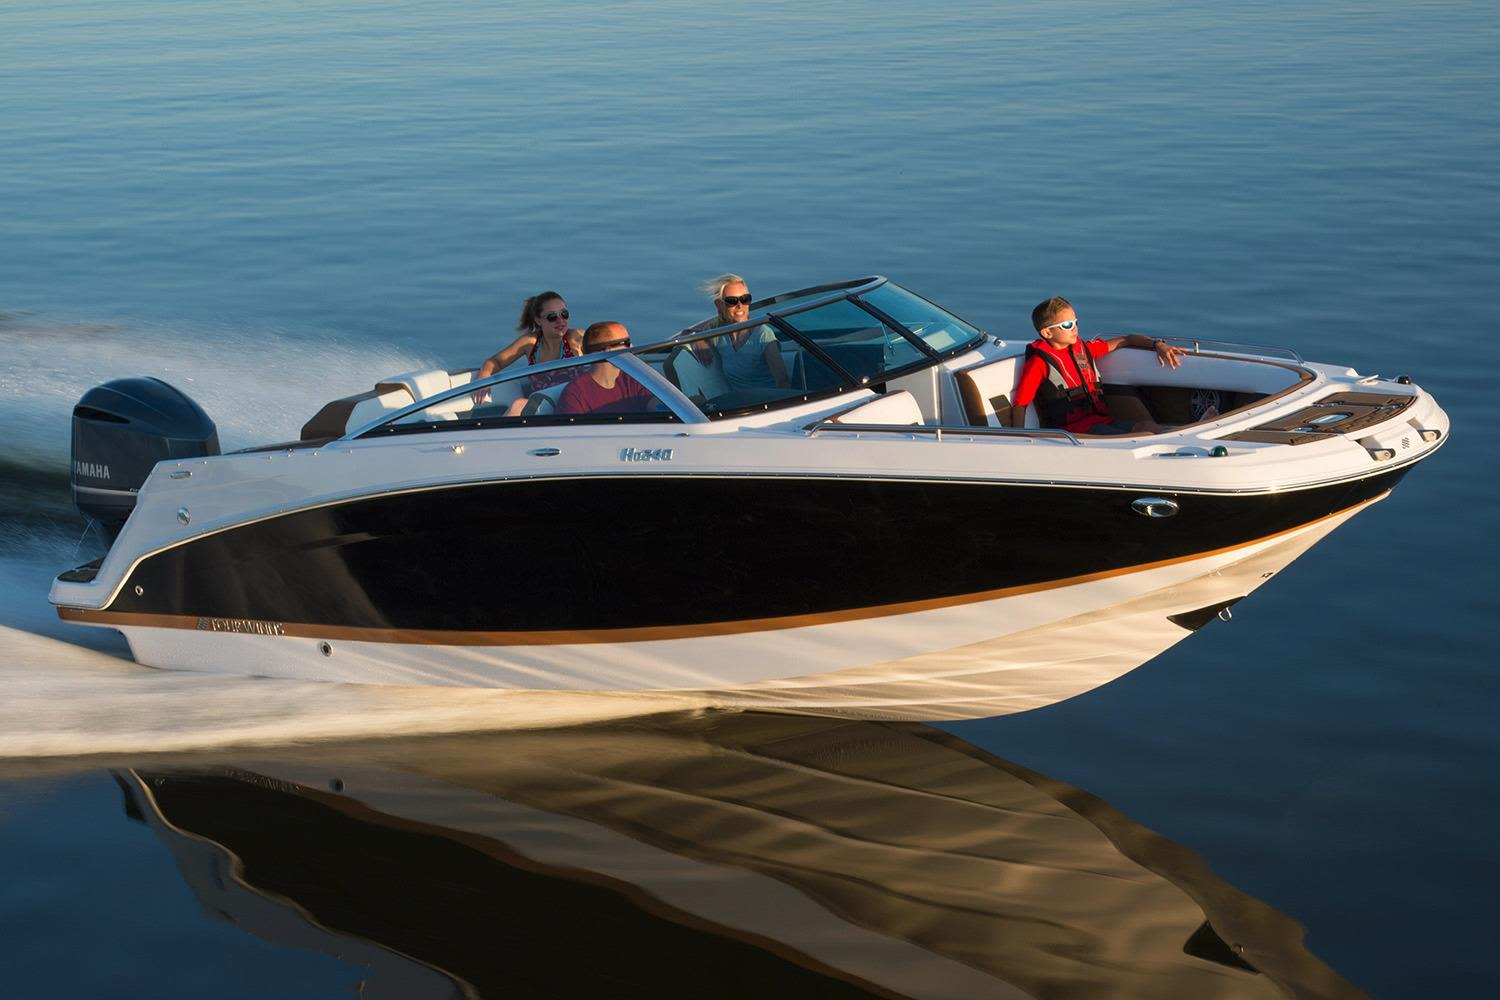 Owners can open up a world of opportunity by listing their boats